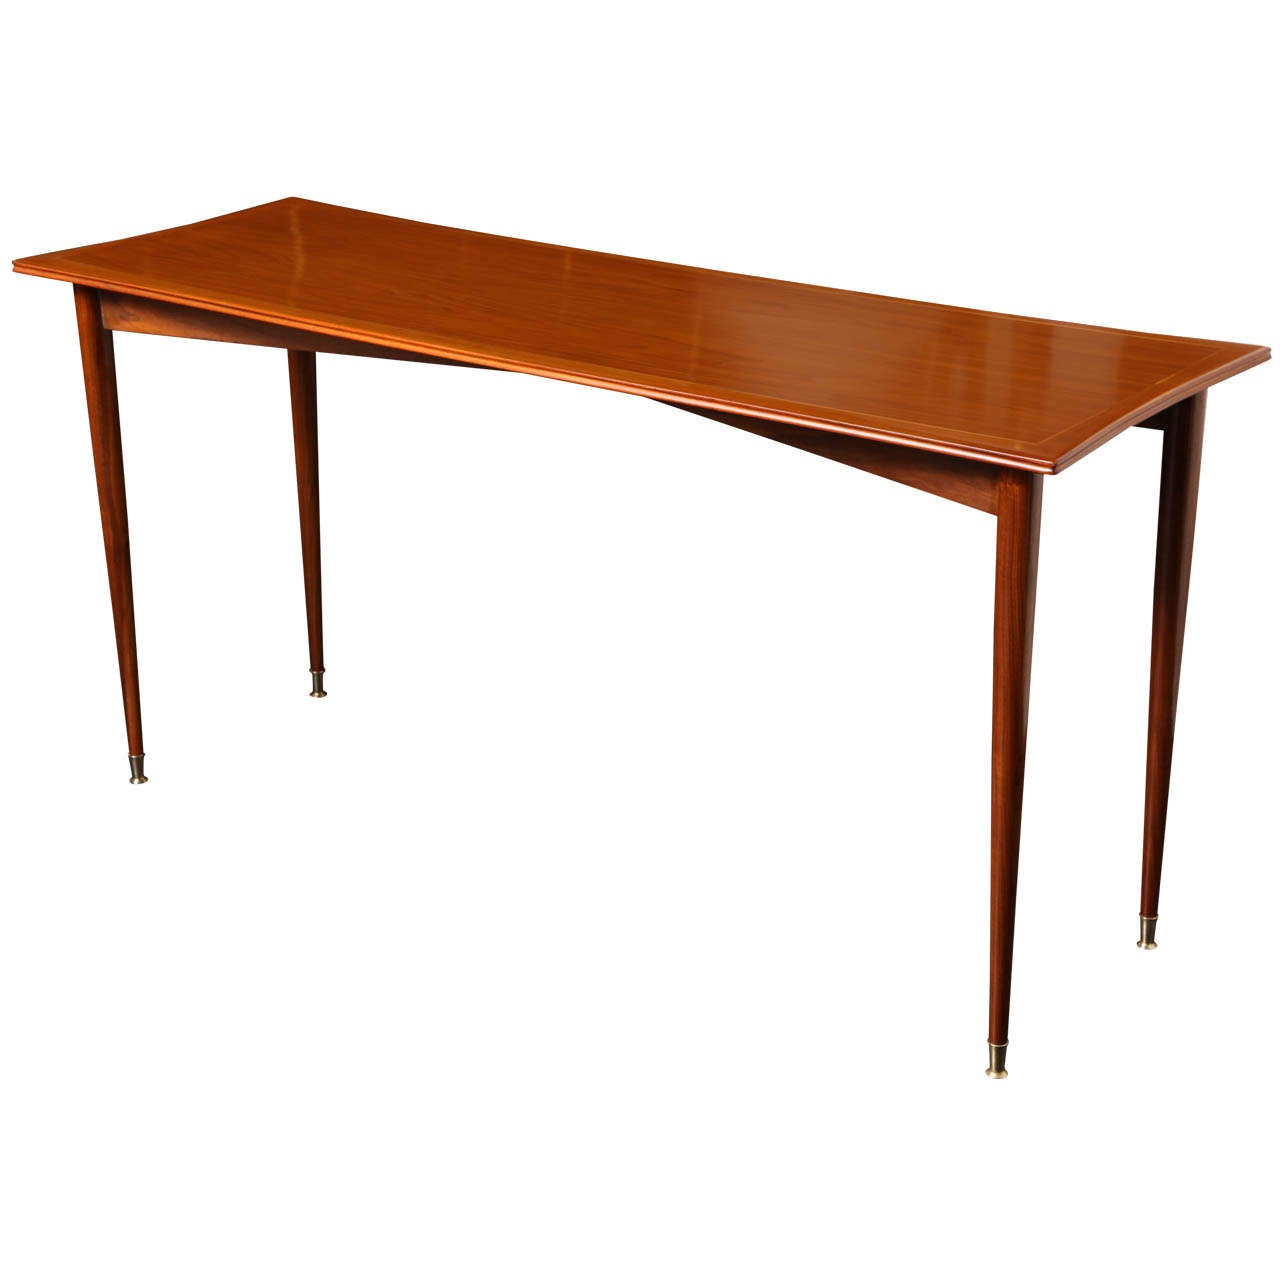 Mid 20th century walnut console in the style of gio ponti for Mid 20th century furniture